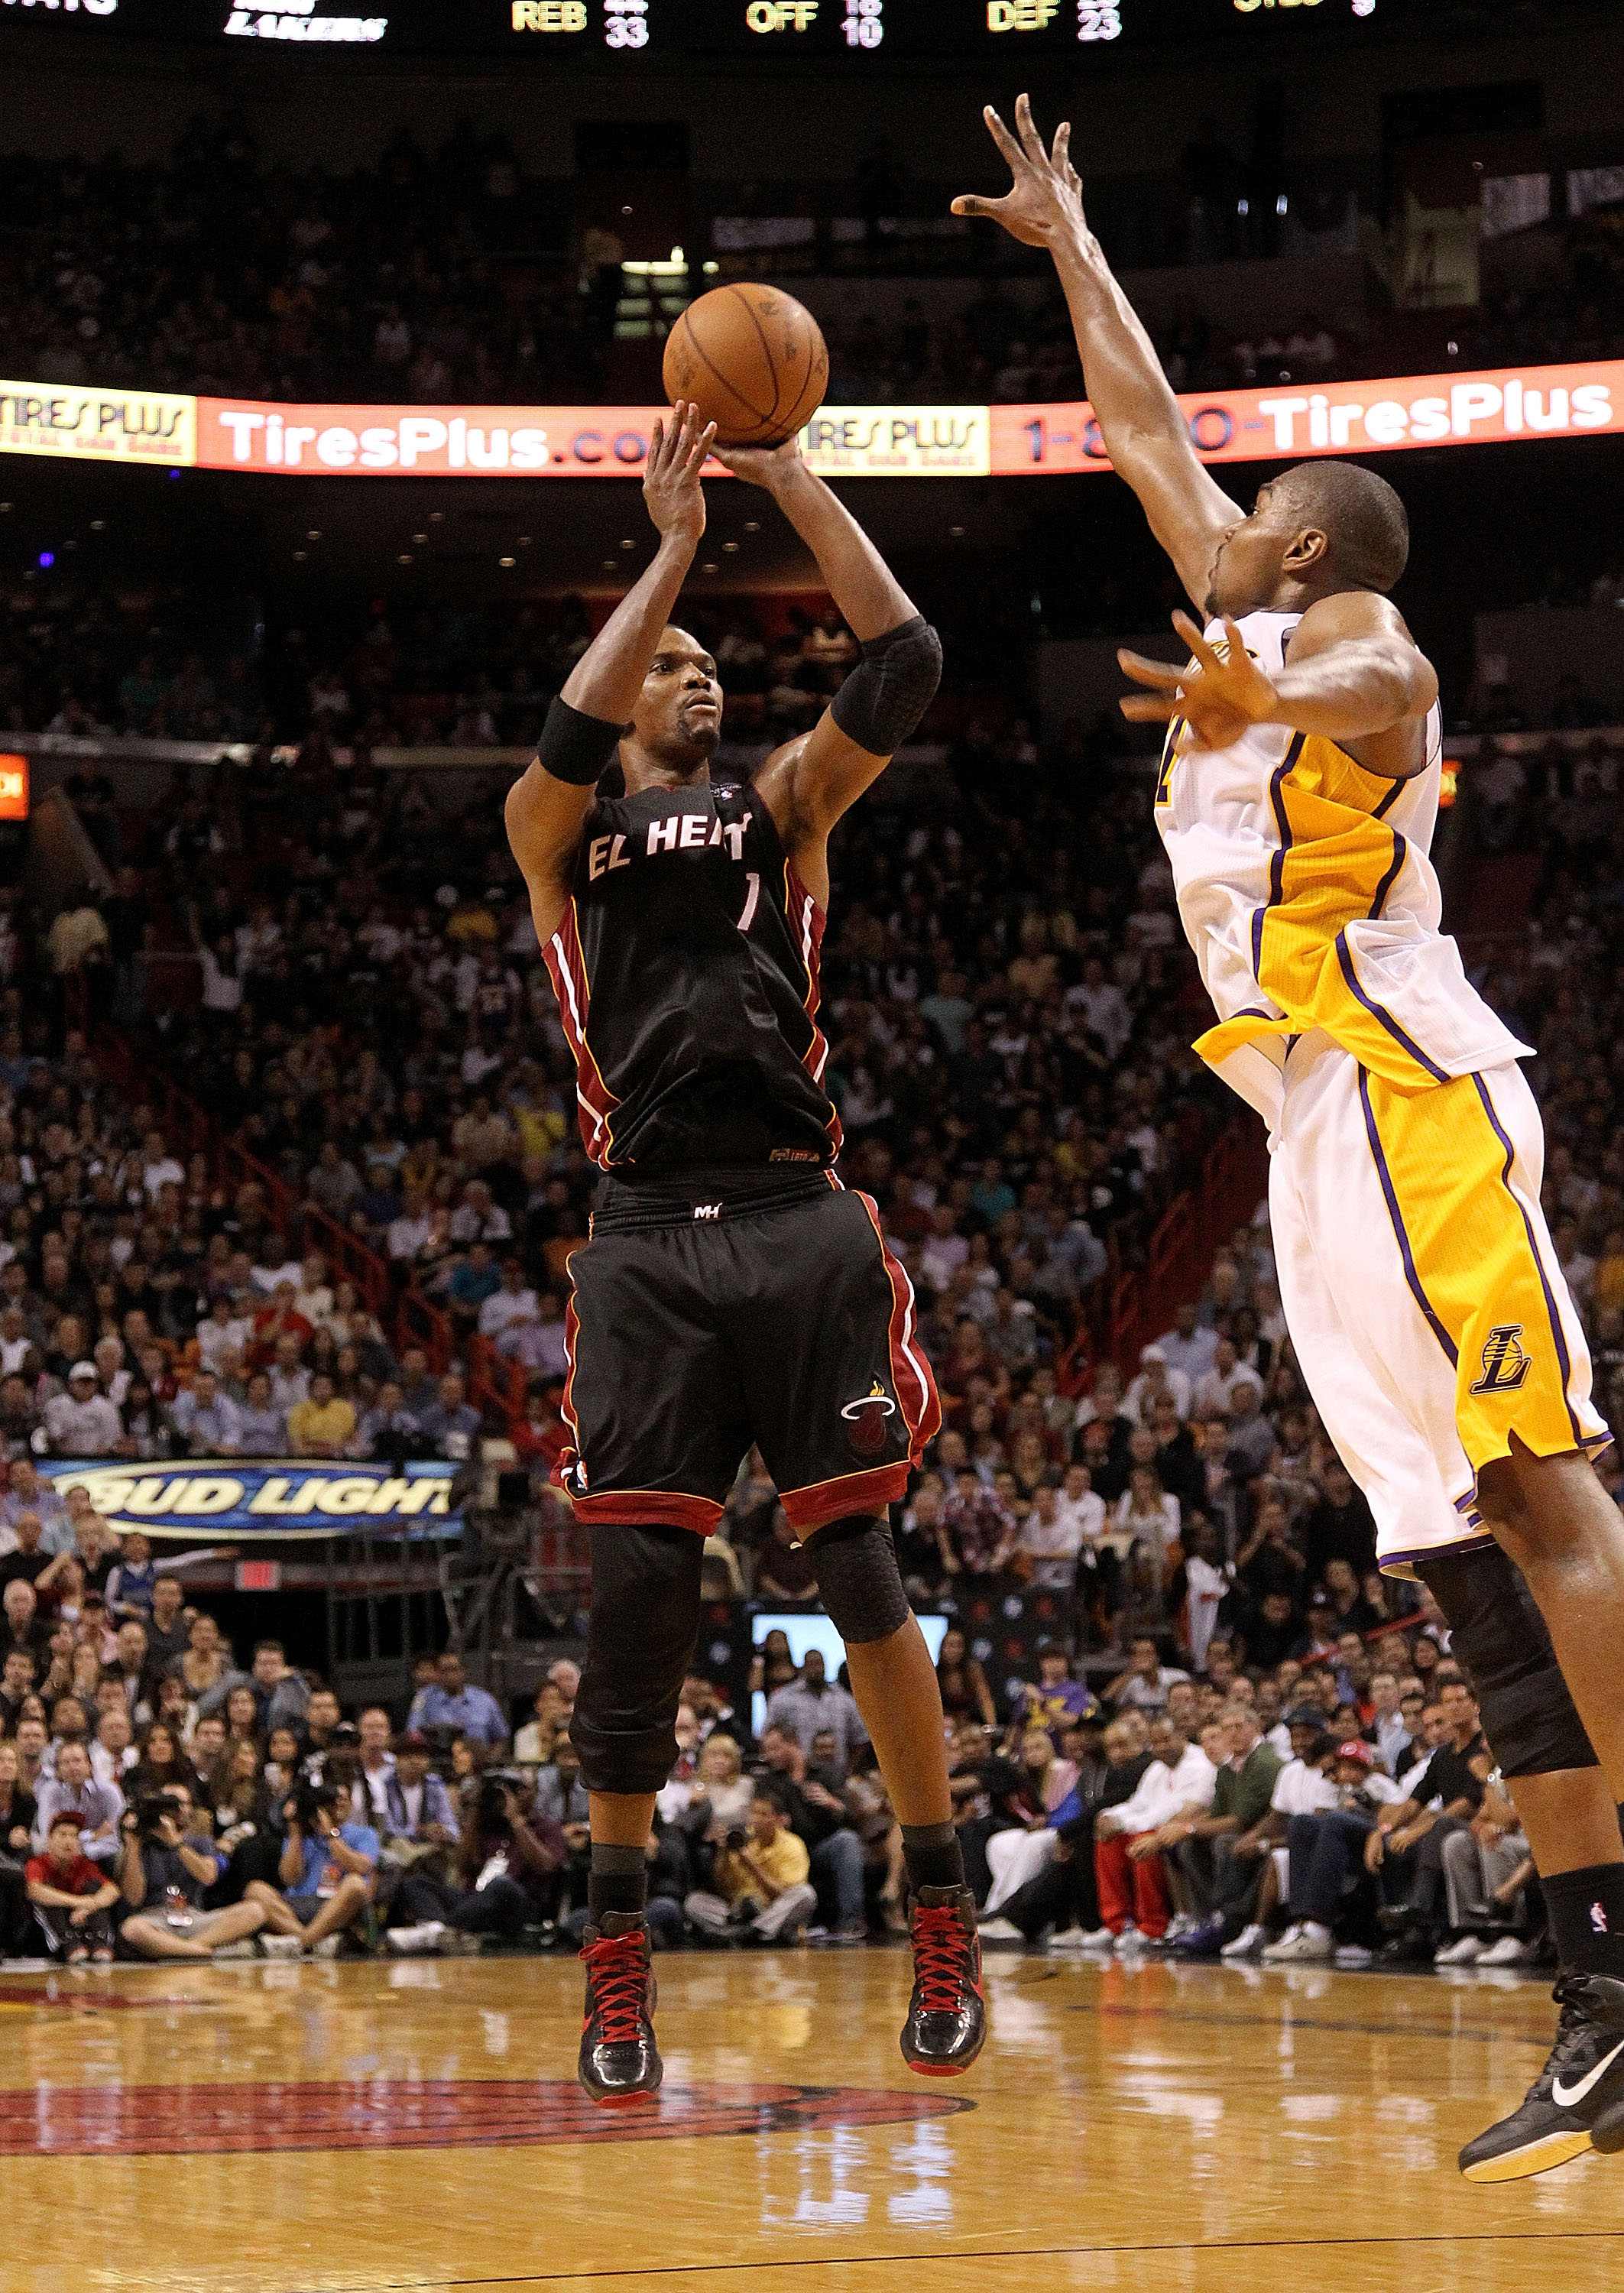 MIAMI, FL - MARCH 10:  Chris Bosh #1 of the Miami Heat shoots over Andrew Bynum #17 of  the Los Angeles Lakers  during a game at American Airlines Arena on March 10, 2011 in Miami, Florida. NOTE TO USER: User expressly acknowledges and agrees that, by dow